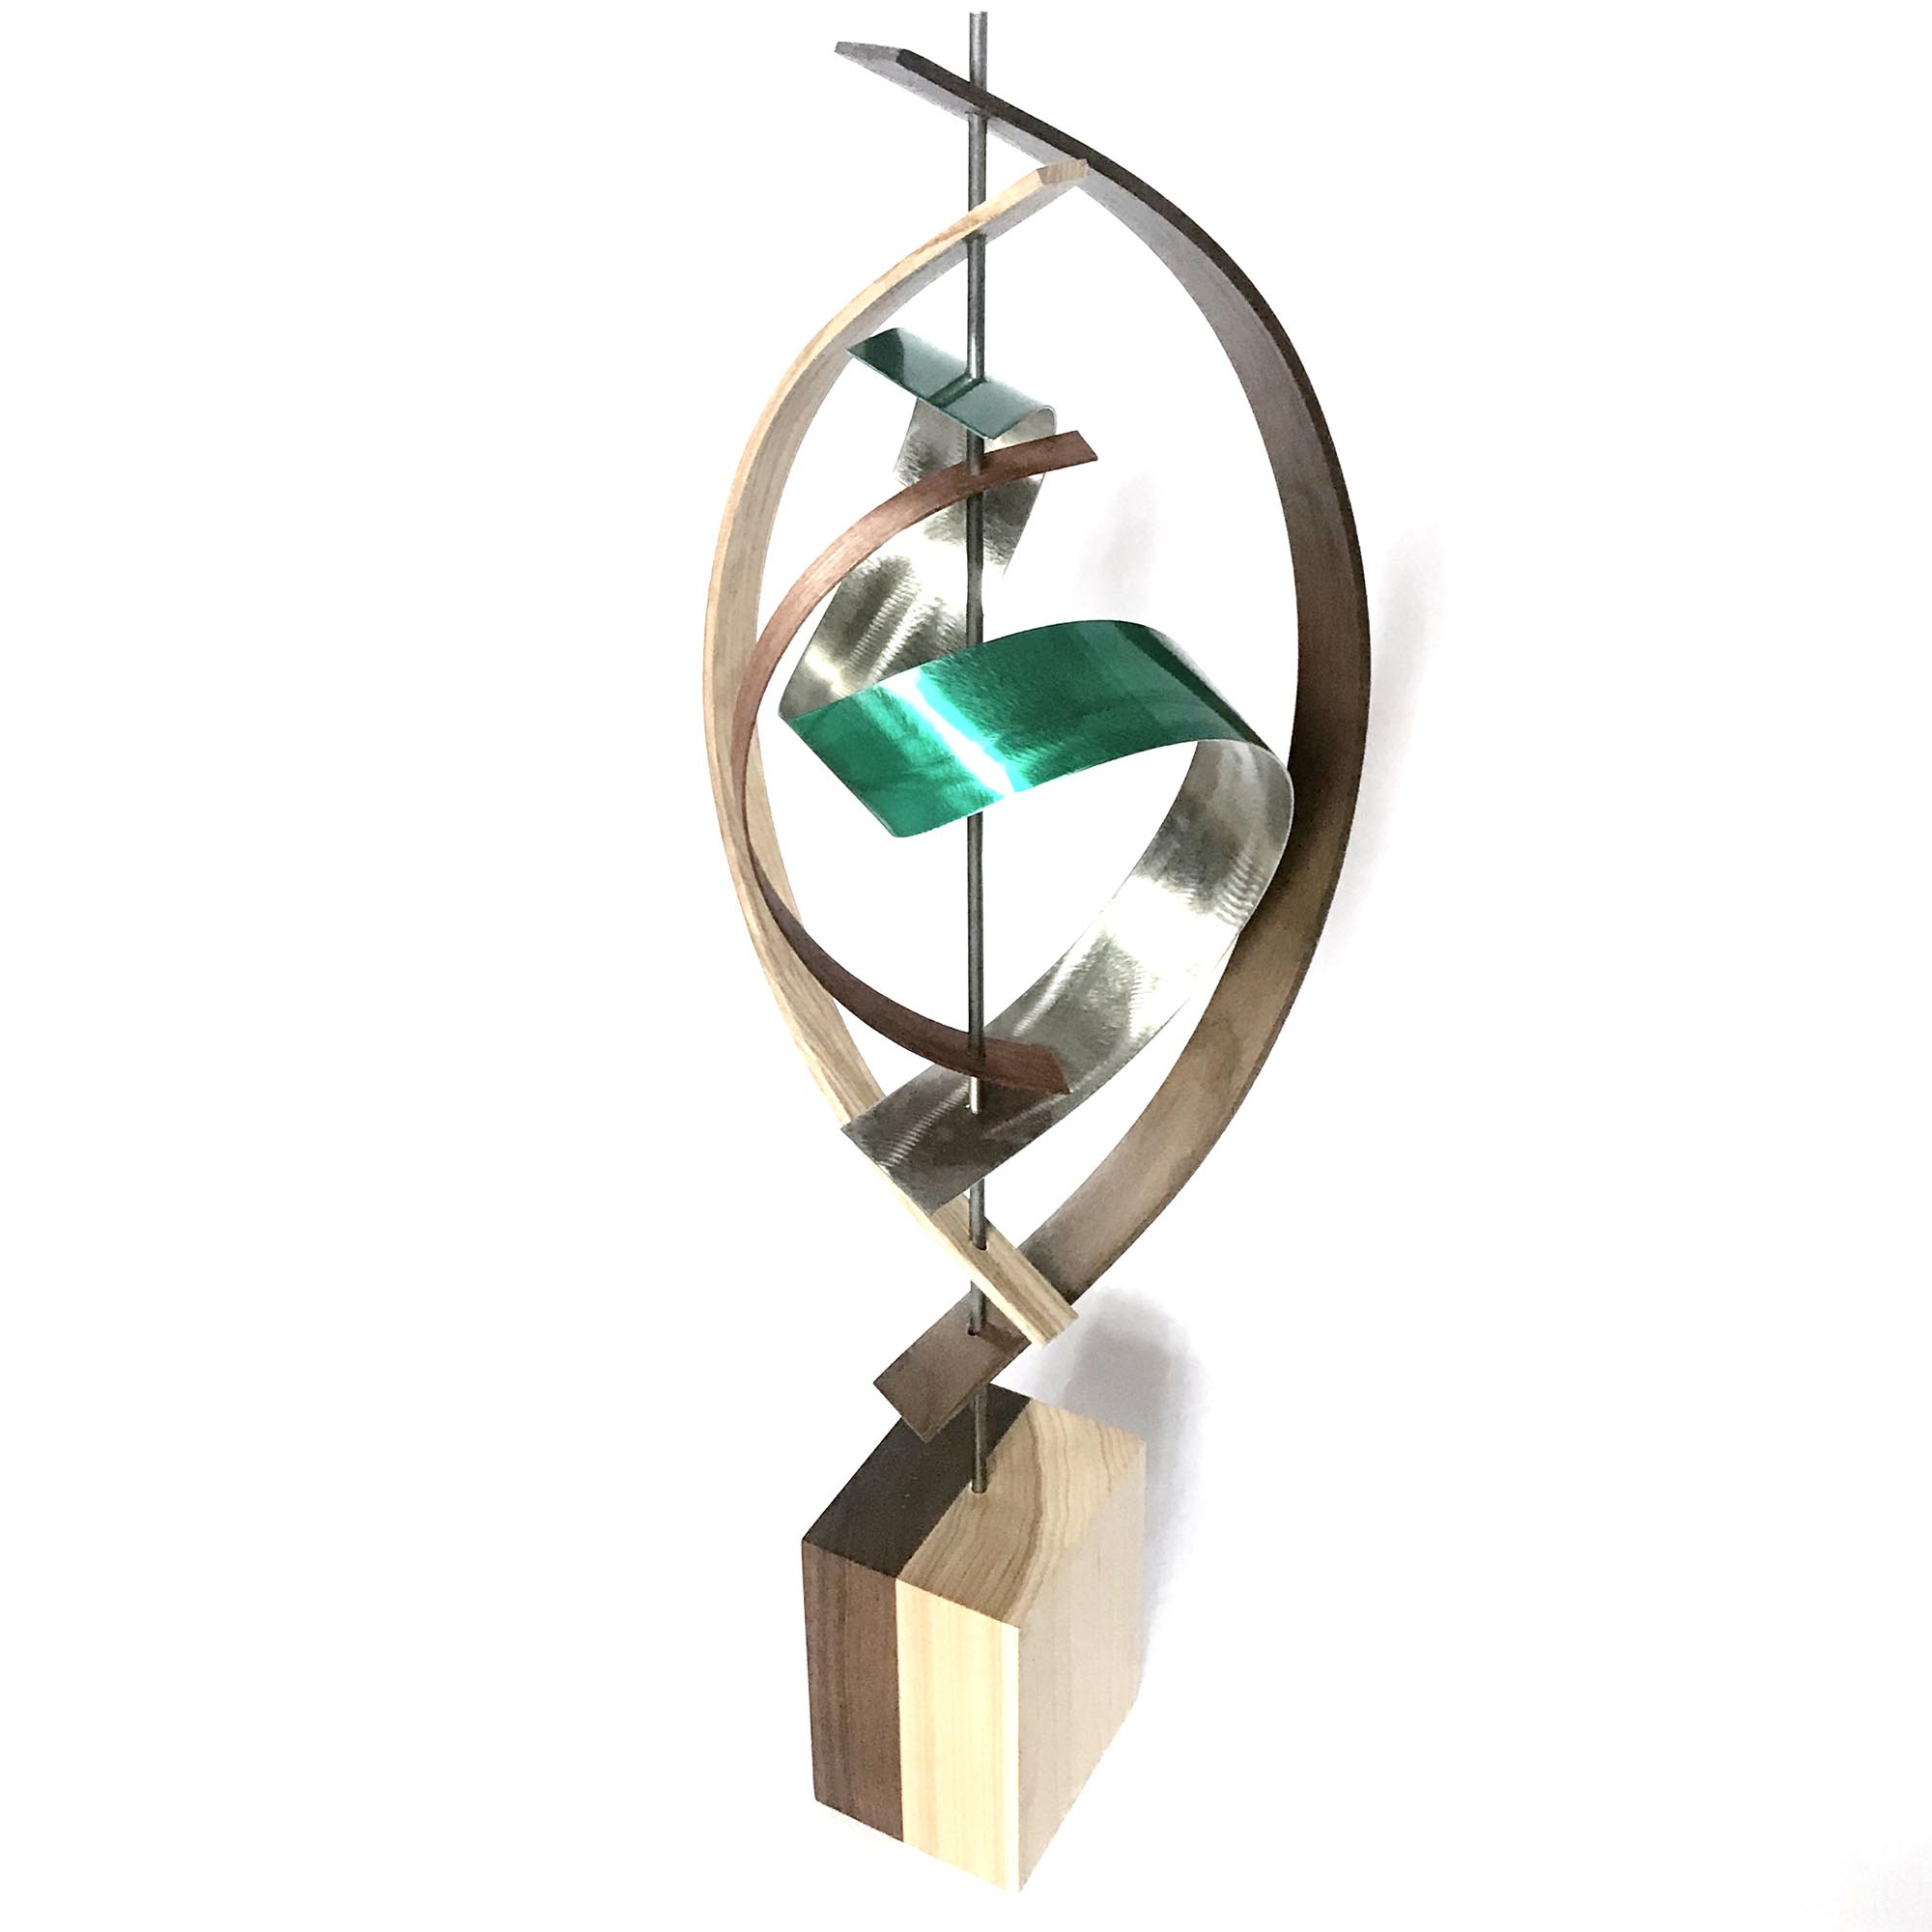 Tranquil by Jackson Wright - Modern Wood Sculpture, Mid-Century Home Decor - Image 3